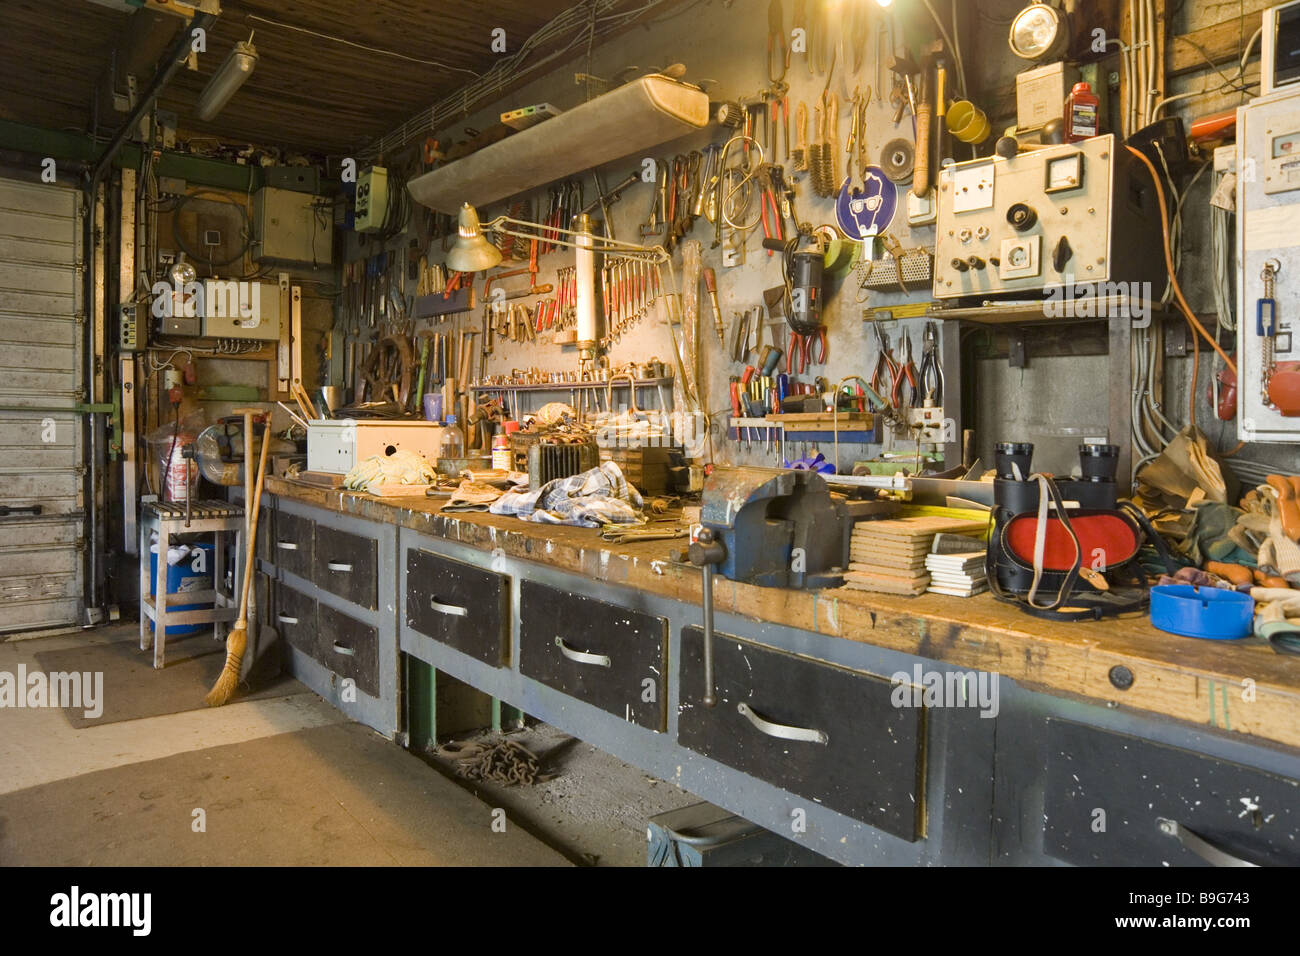 Car Garage With Hobby Room